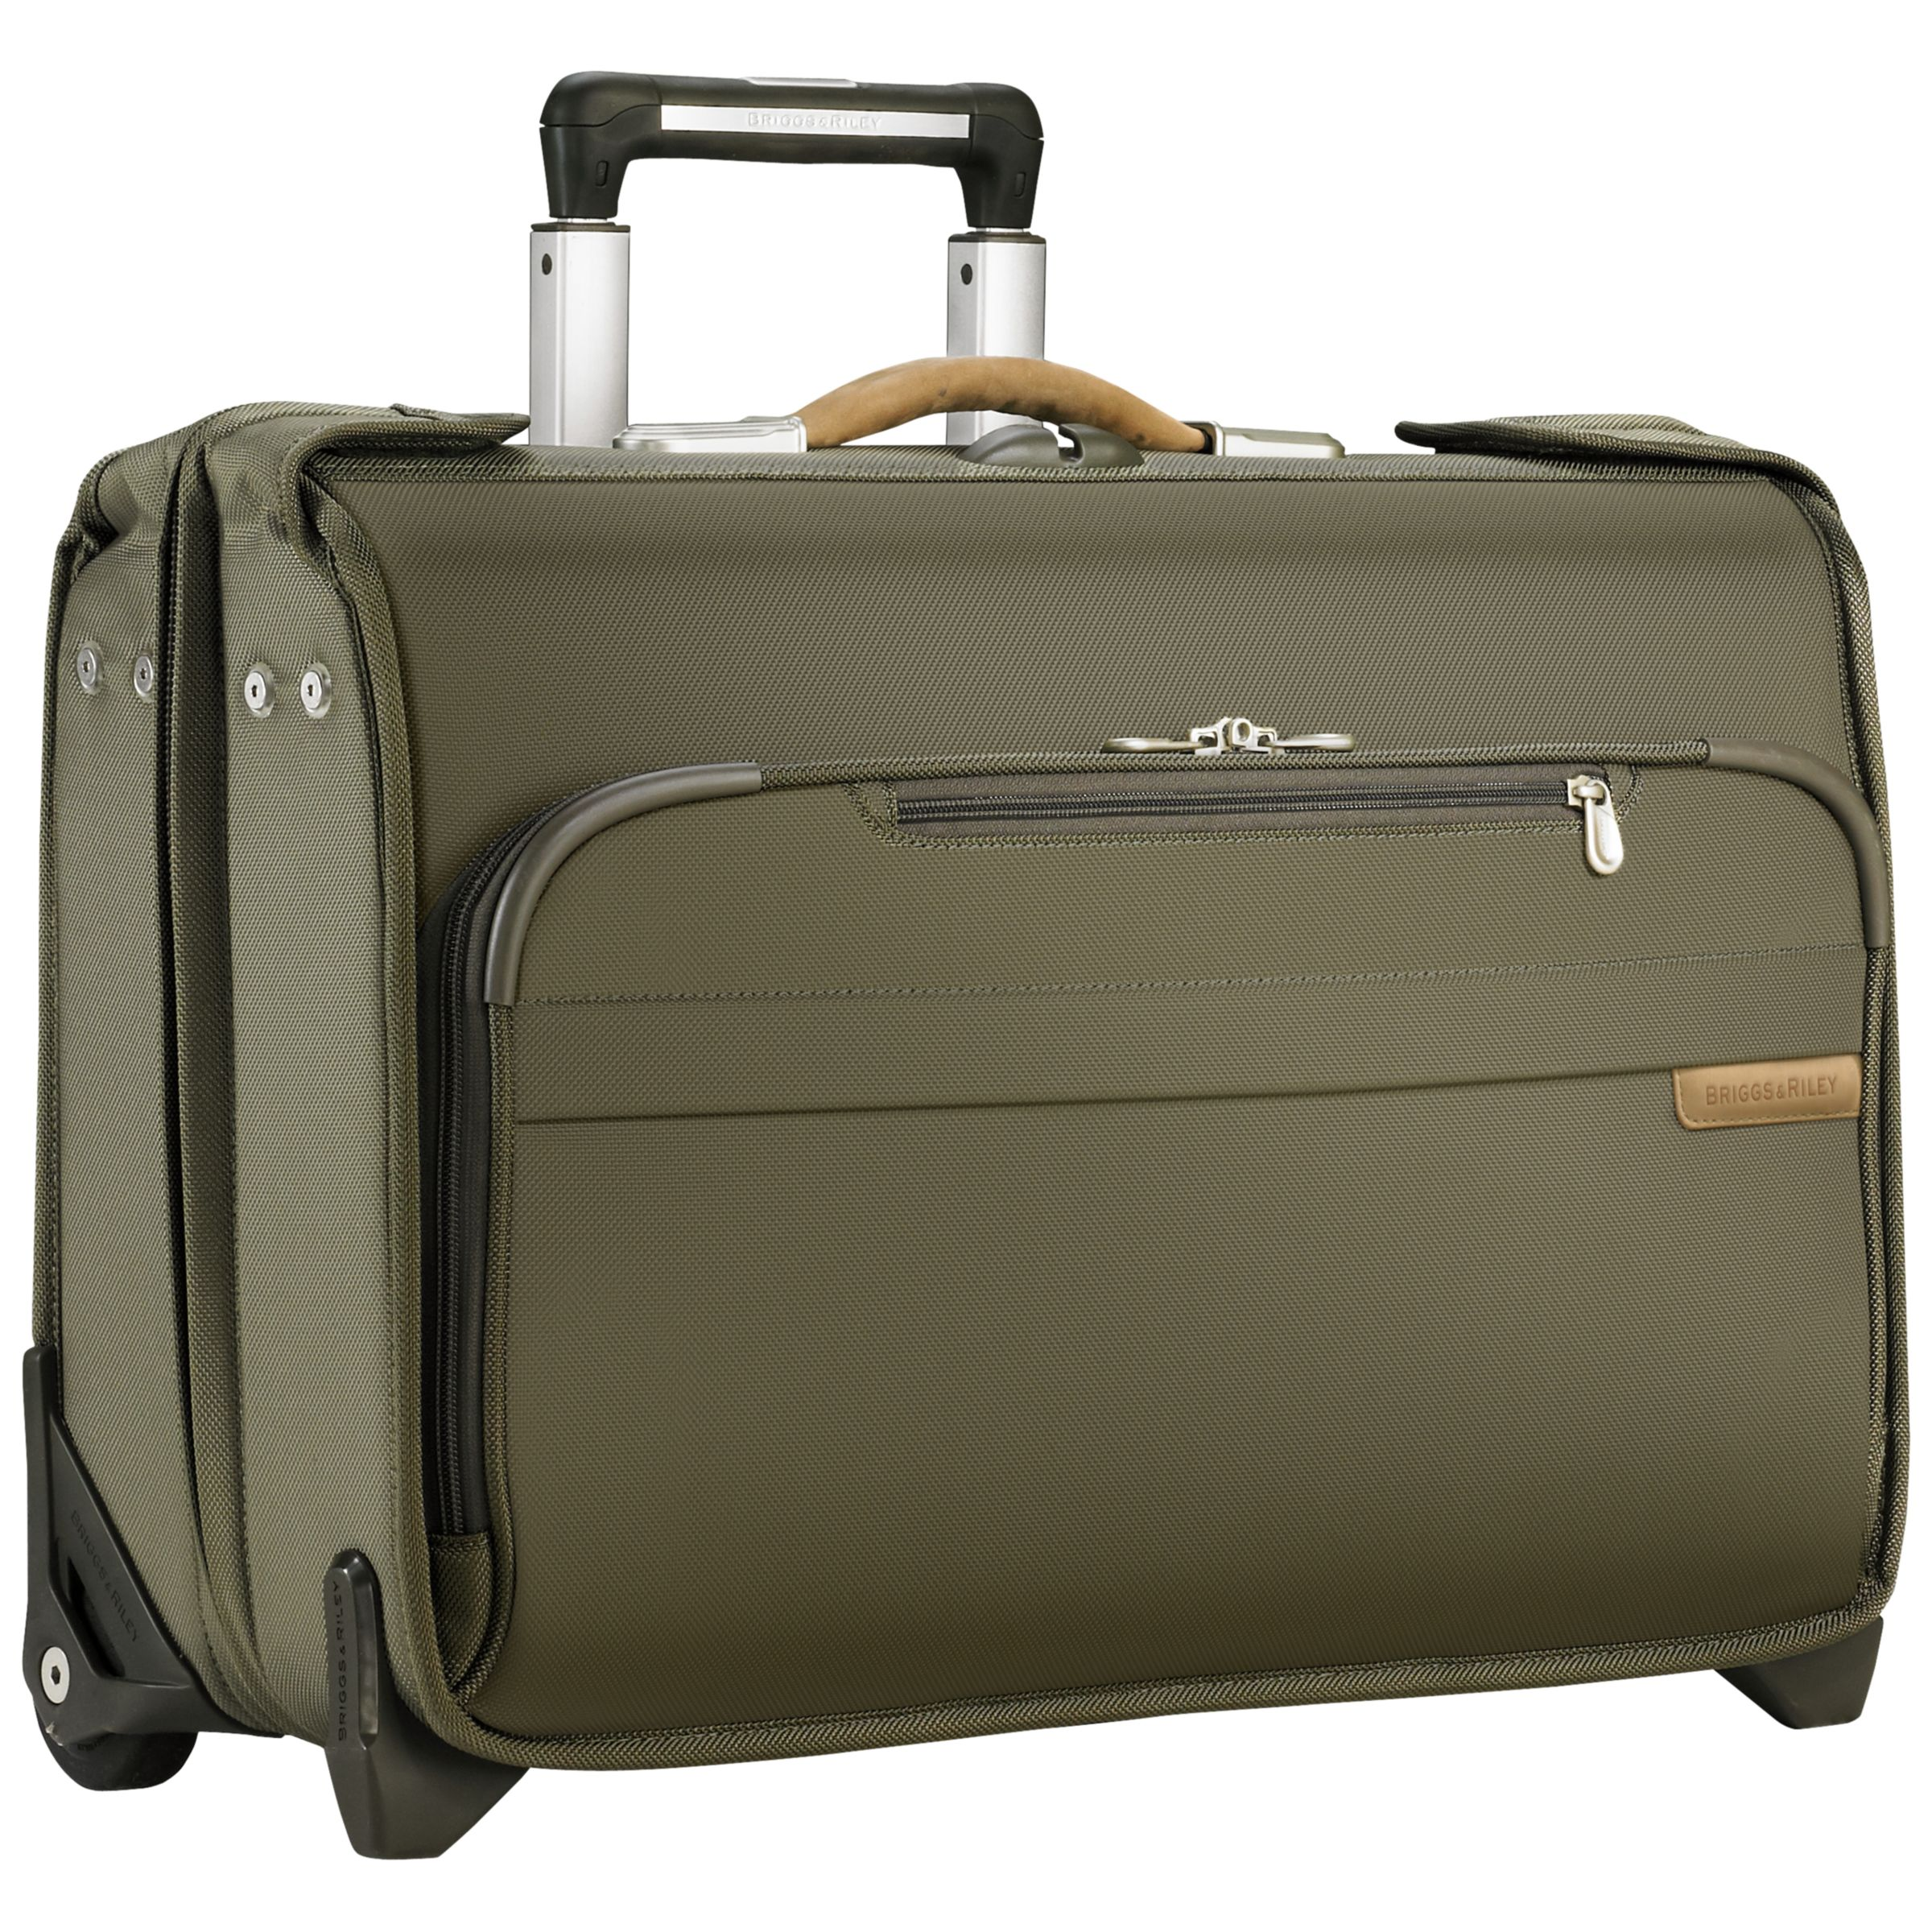 Briggs & Riley Baseline Carry-On 2-Wheel Garment Bag, Olive